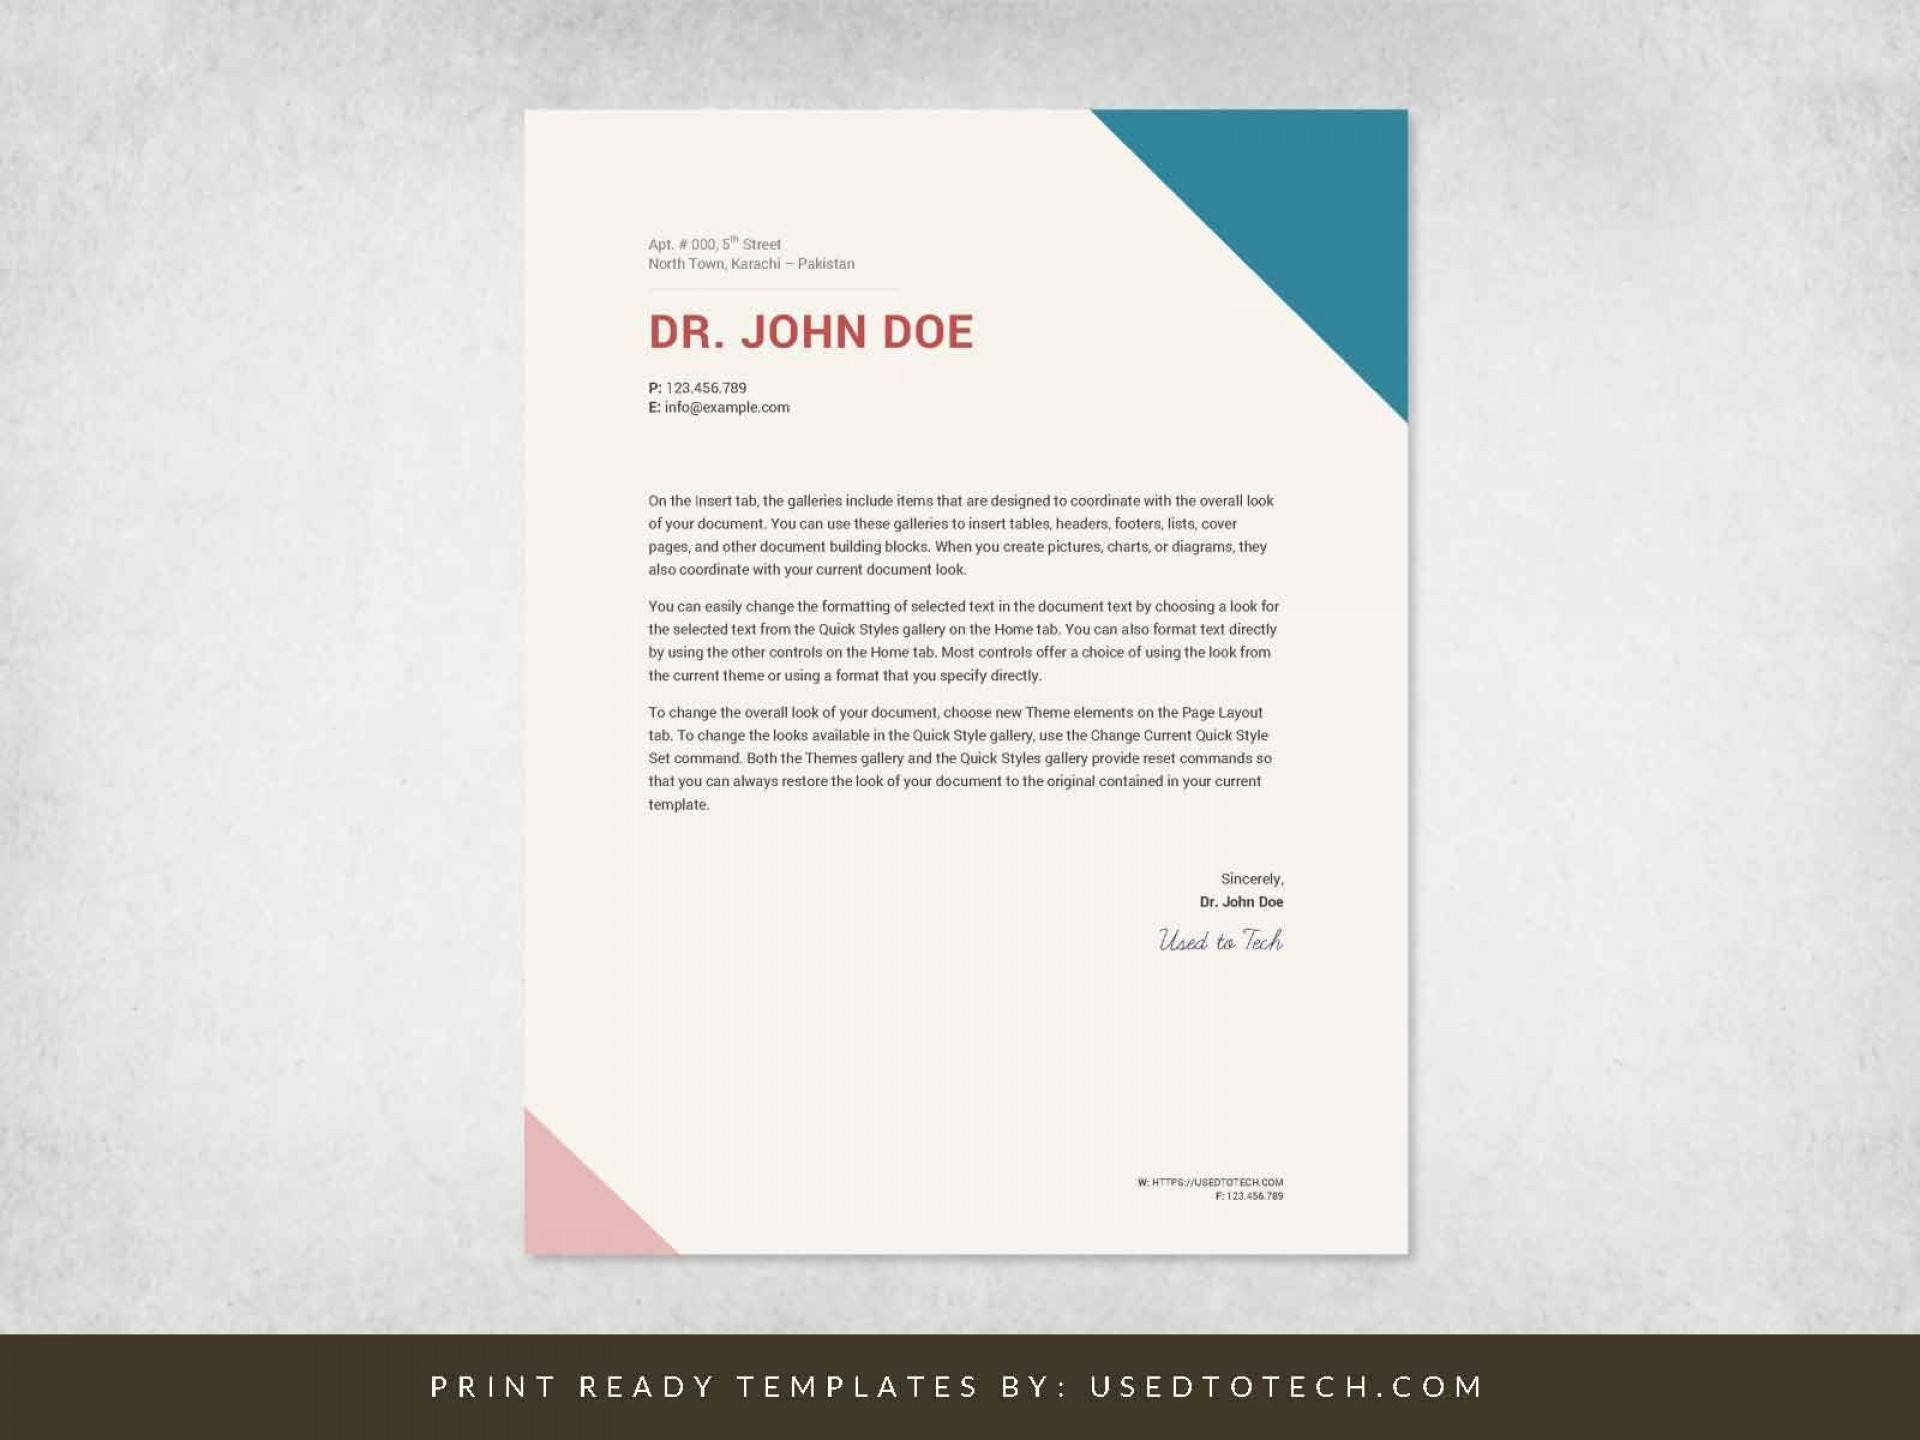 001 Fascinating Sample Letterhead Template Free Download Image  Professional Design In Word Format1920